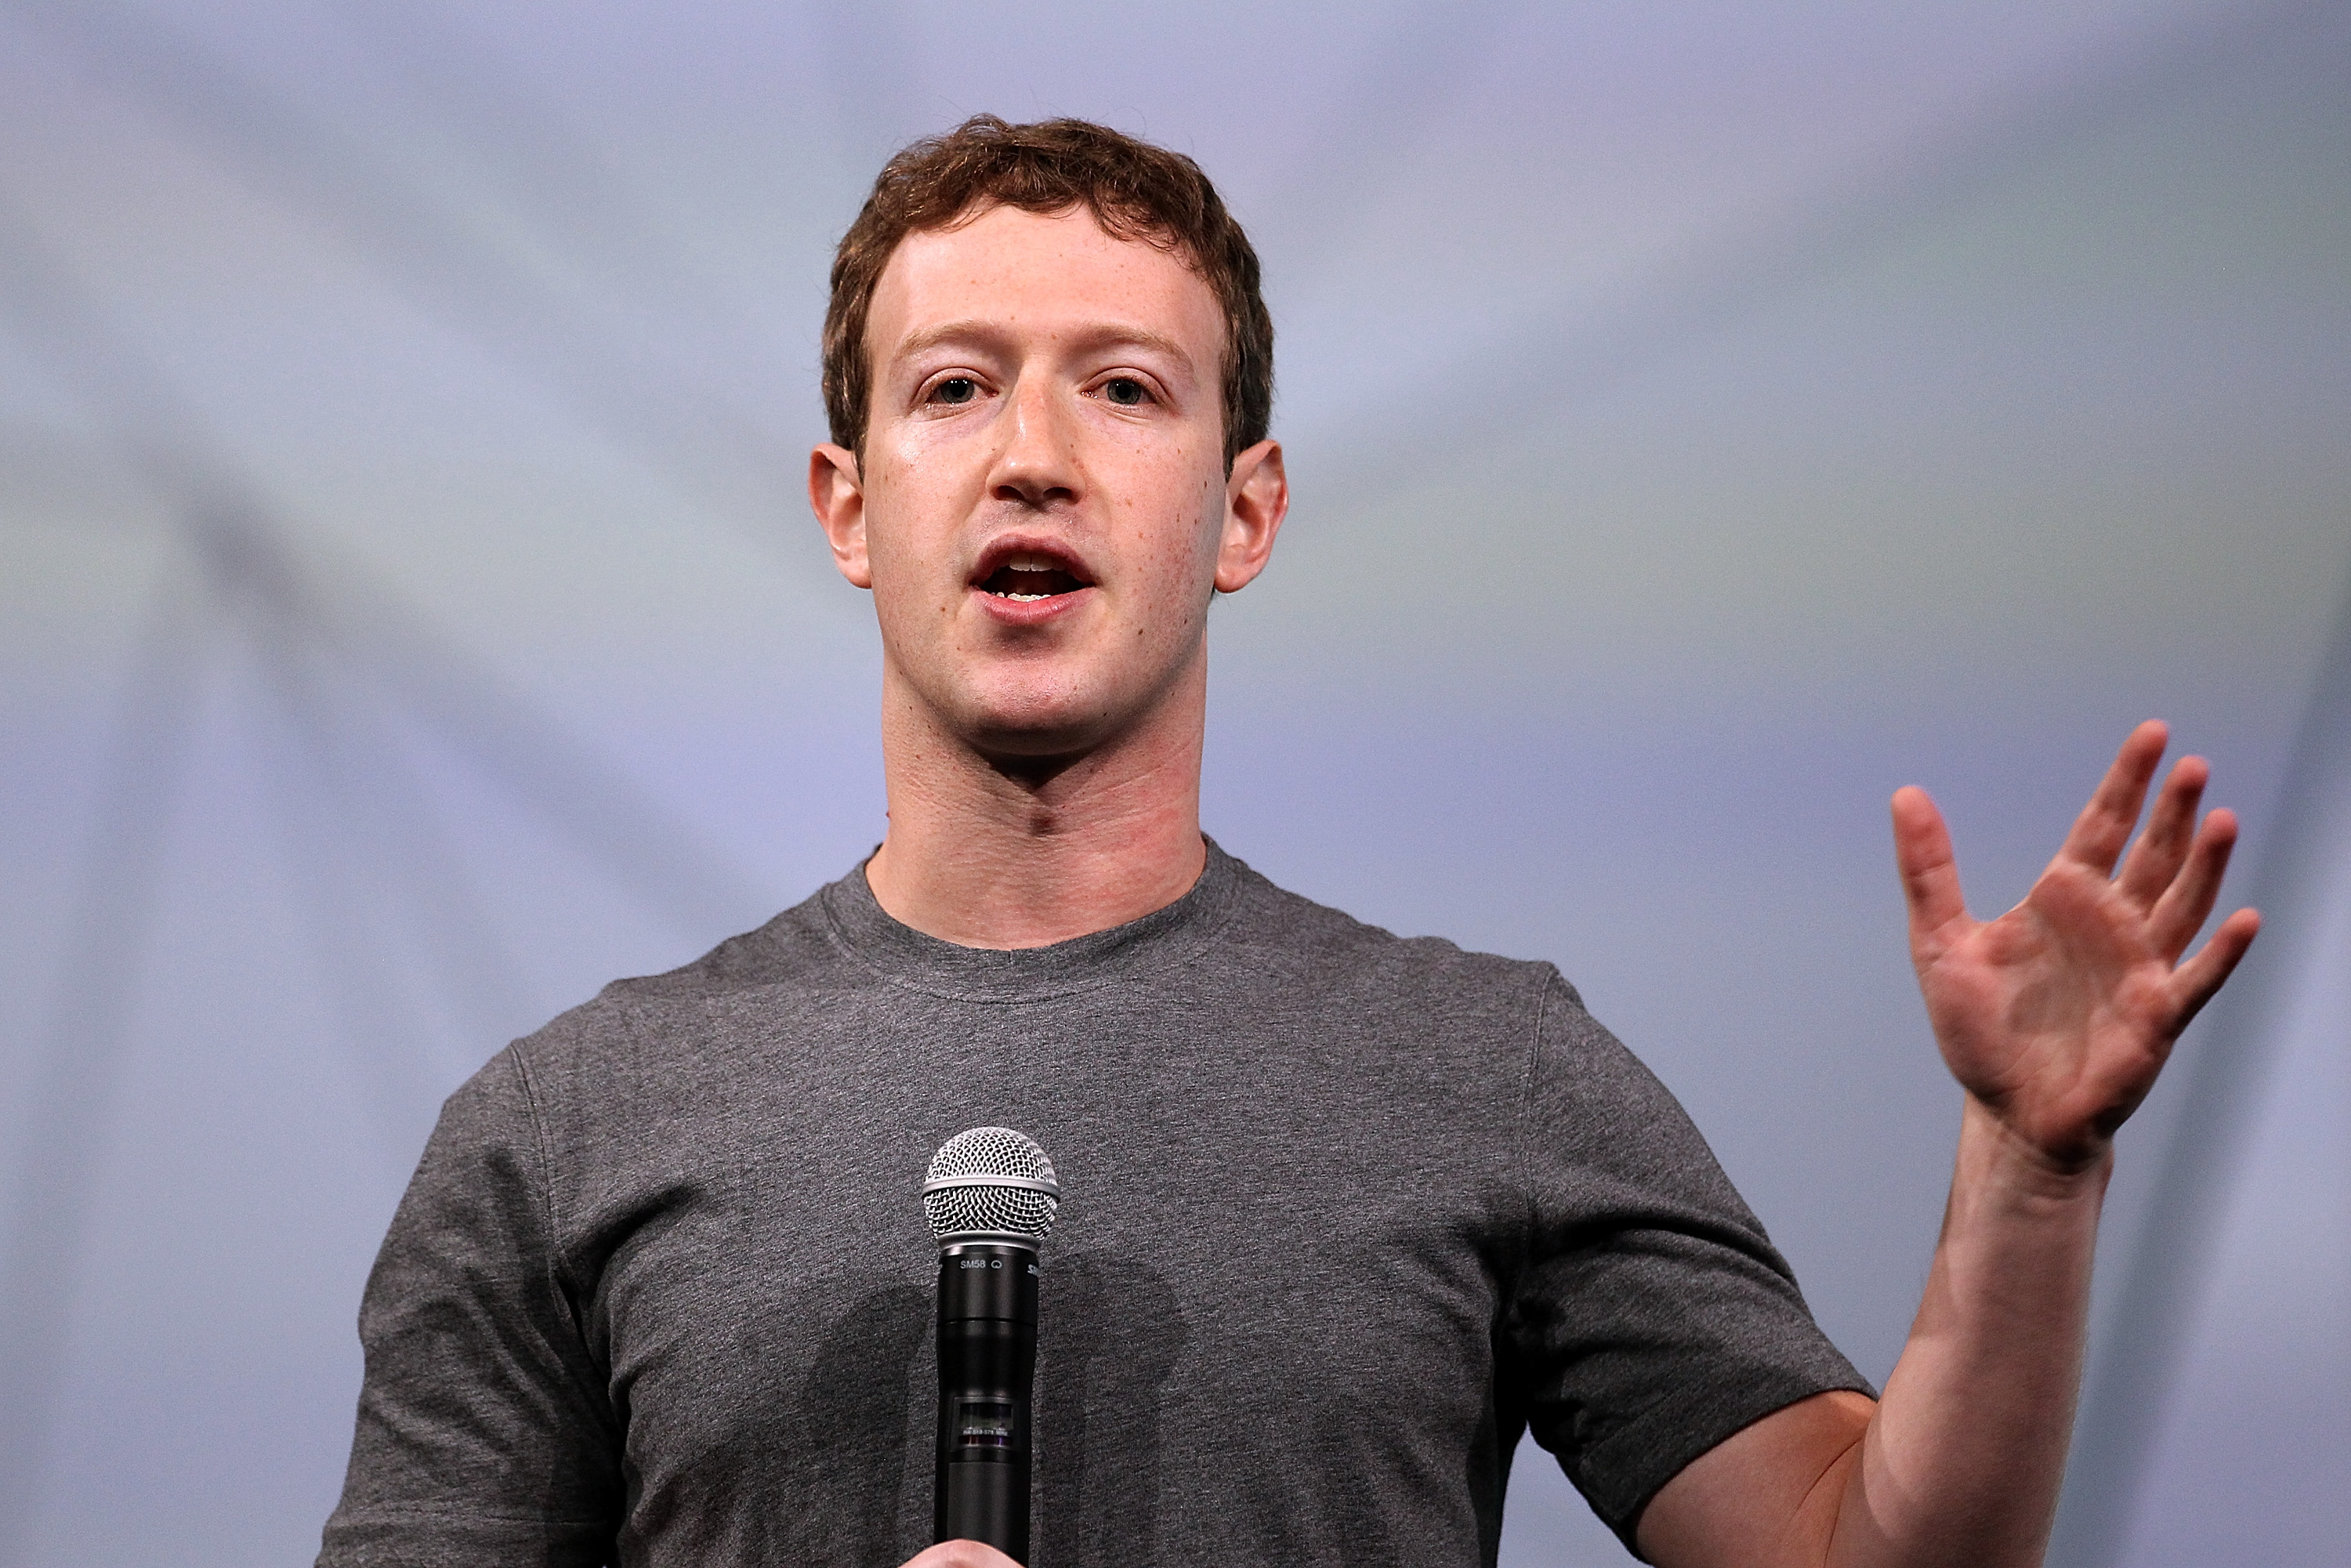 Facebook CEO Mark Zuckerberg delivers the opening keynote at the Facebook f8 conference on April 30, 2014 in San Francisco, California.